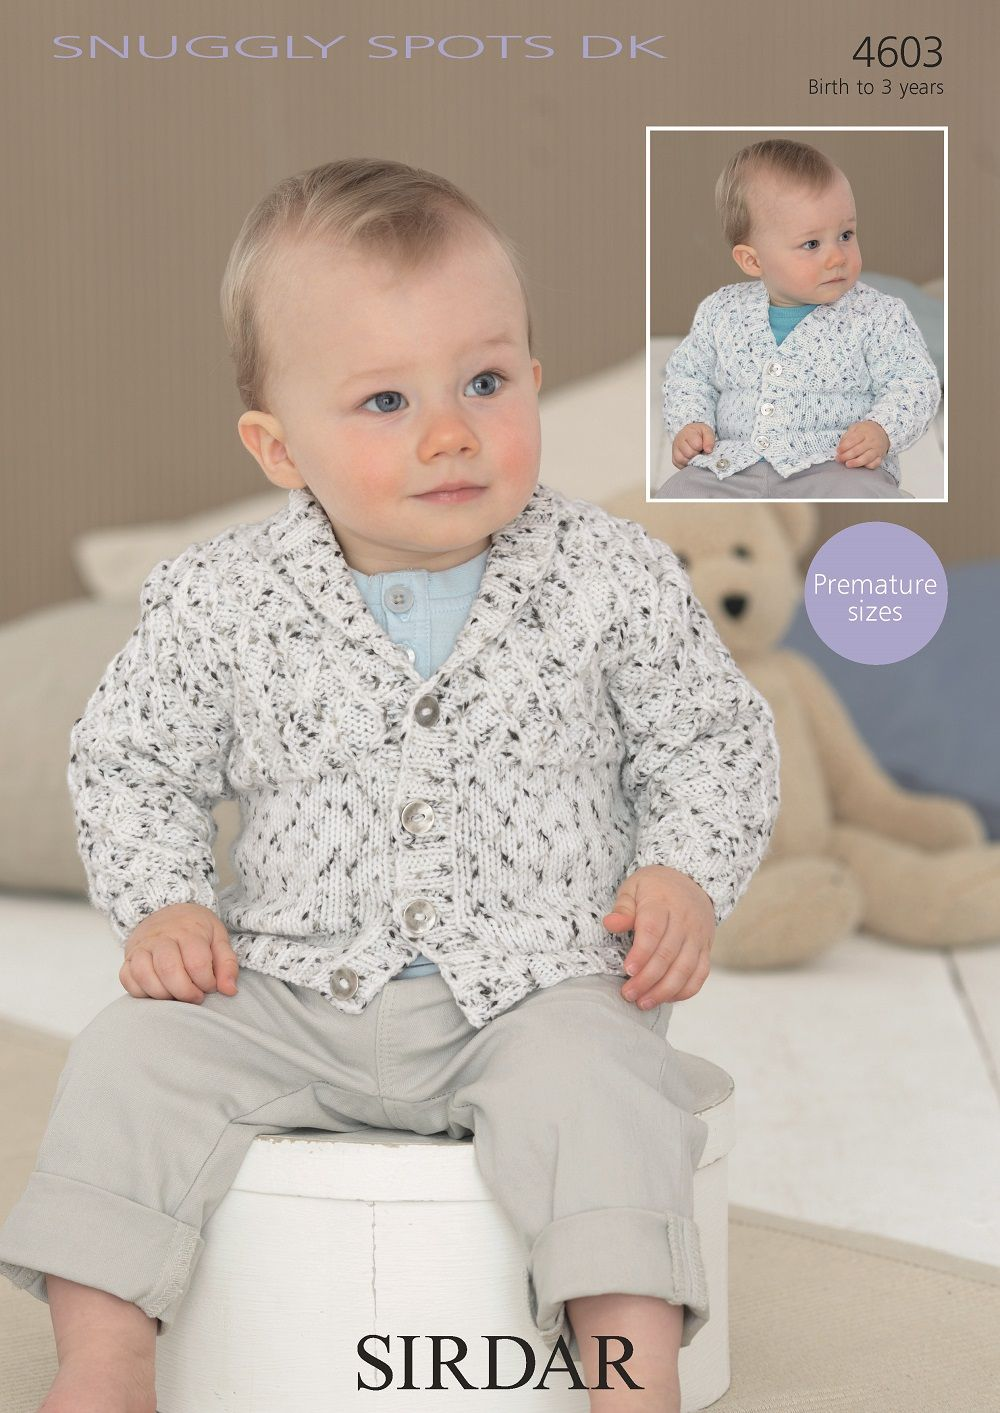 Sirdar Baby Boys Cardigans Knitting Pattern In Snuggly